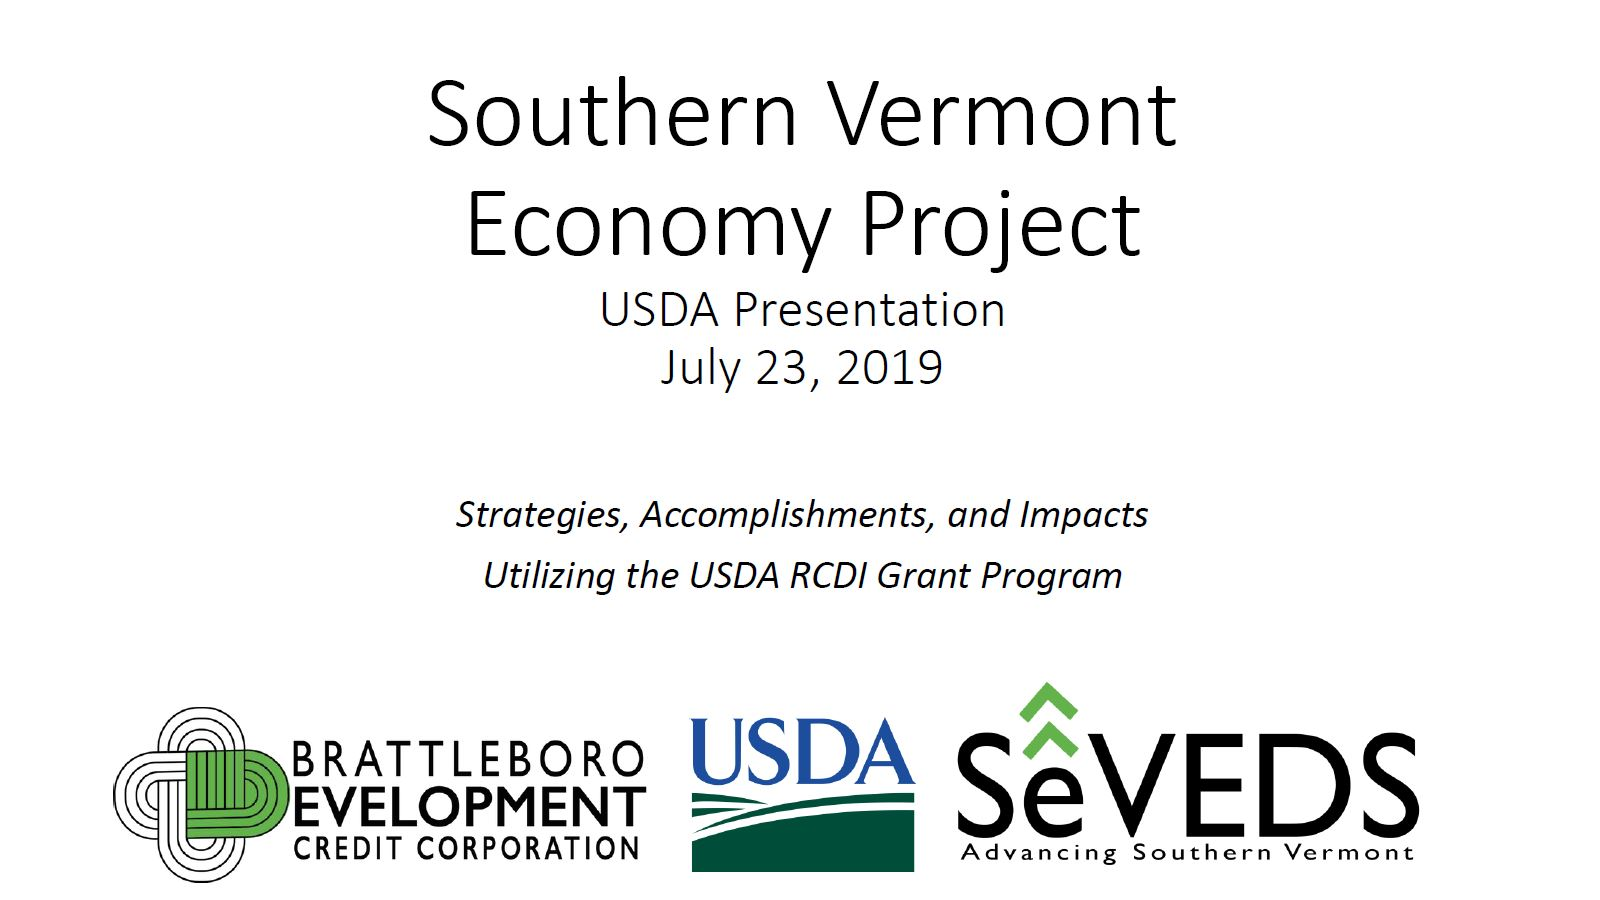 Southern Vermont Economy Project Final Presentation